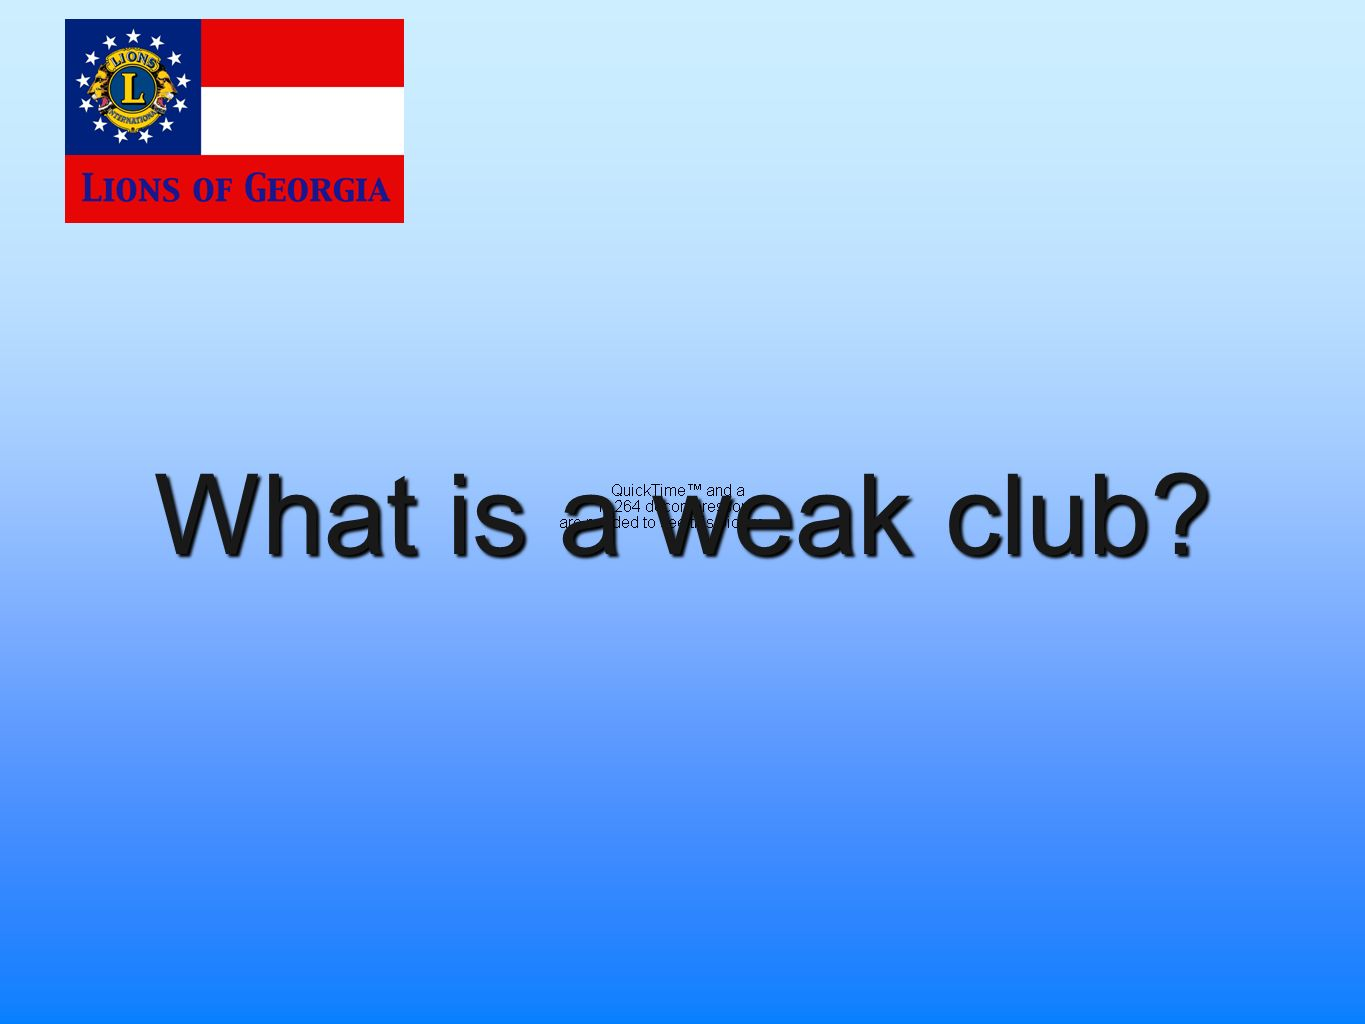 What is a weak club?